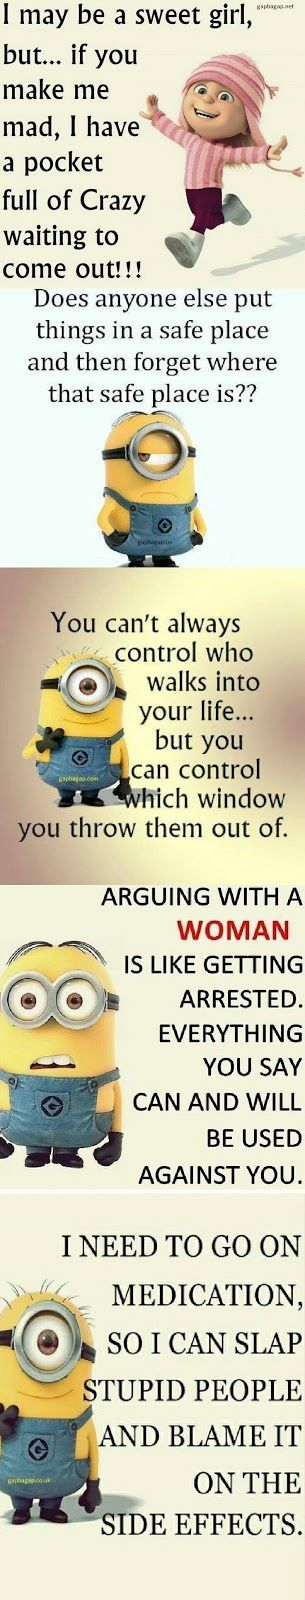 Share if you find it terrific! Here you will find the best minions...